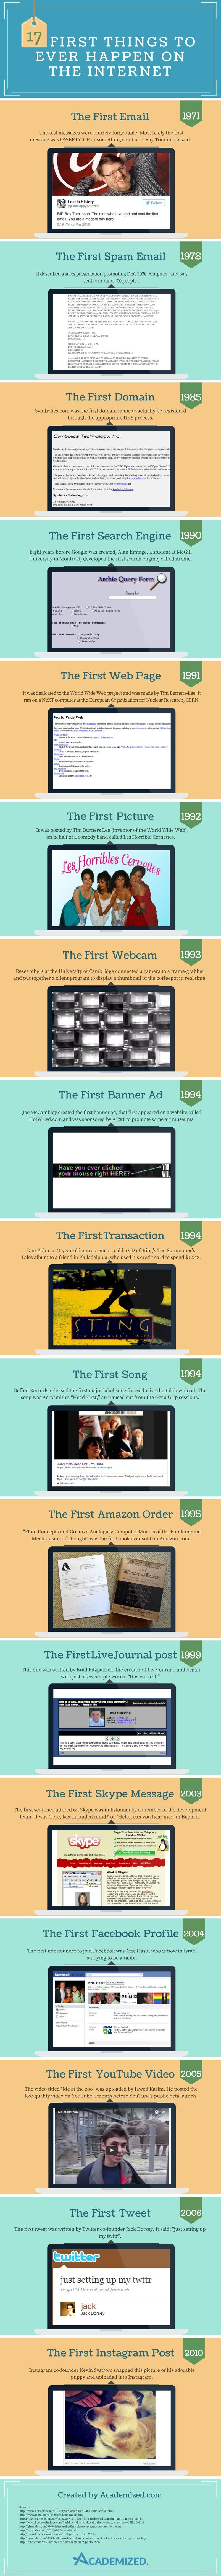 17 First Things To Ever Happen On The Internet #Infographic